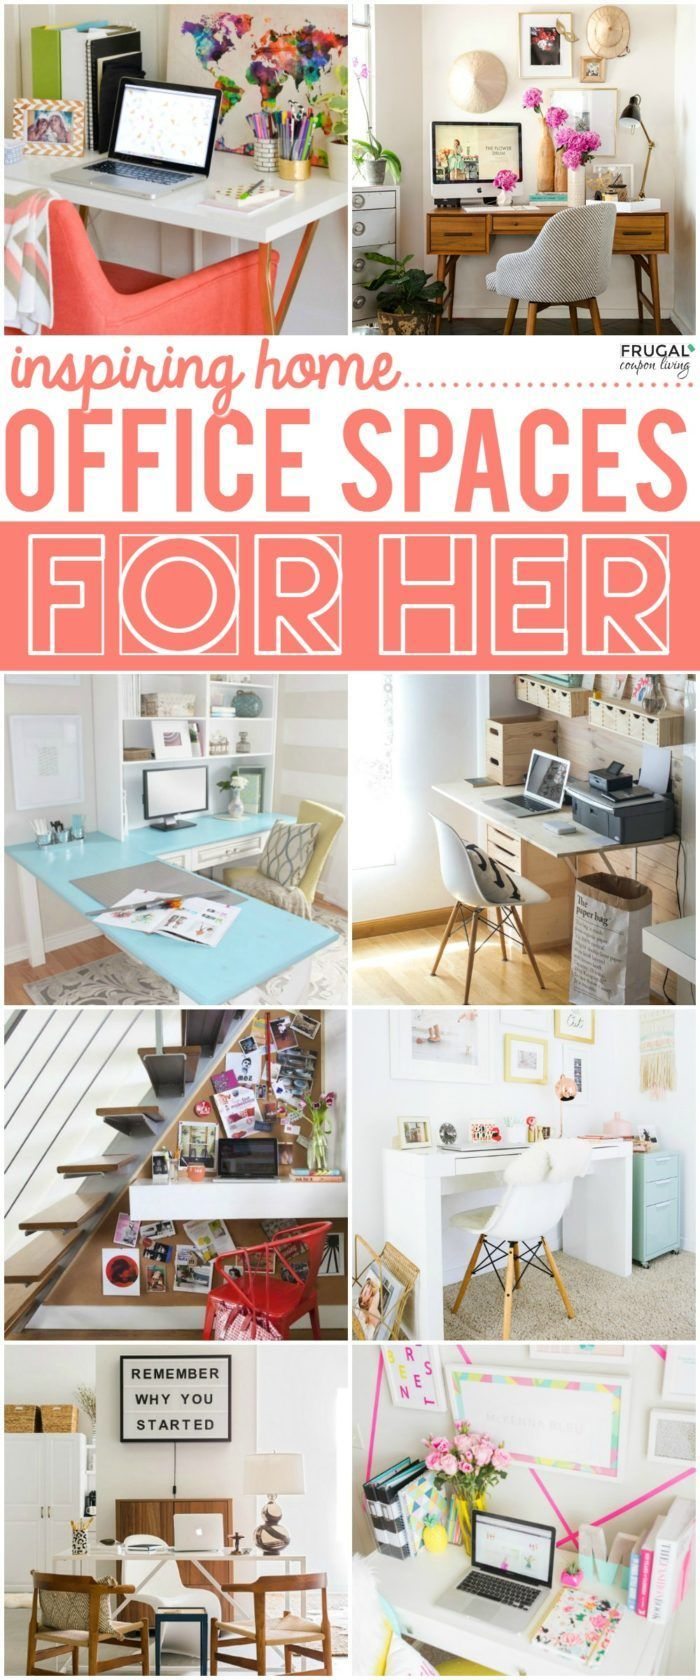 Amazing Frugal Home Decorating Ideas Part - 9: Inspiring Home Office Decor Ideas For Her